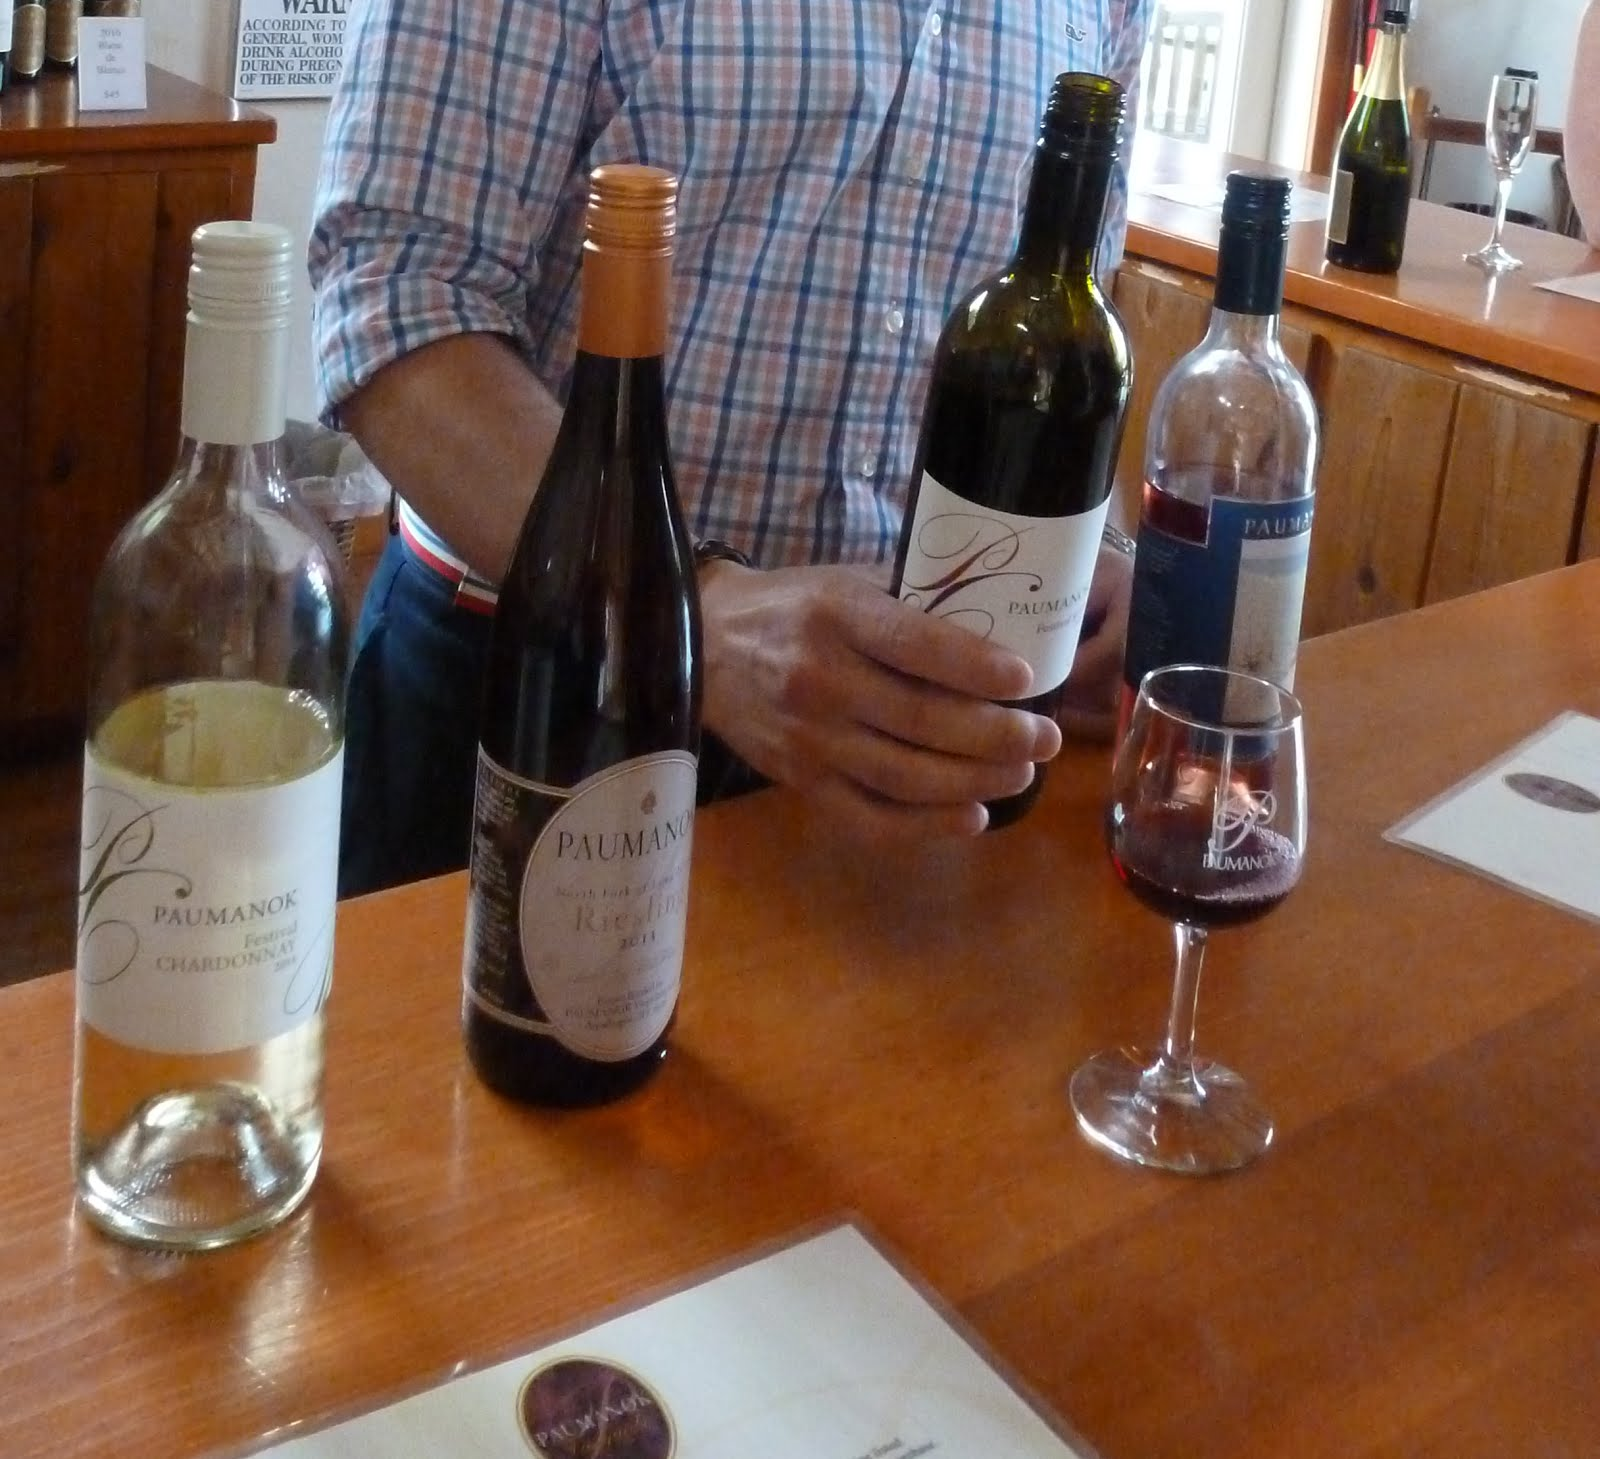 Georgi, the sommelier, suggests wines to his guests.